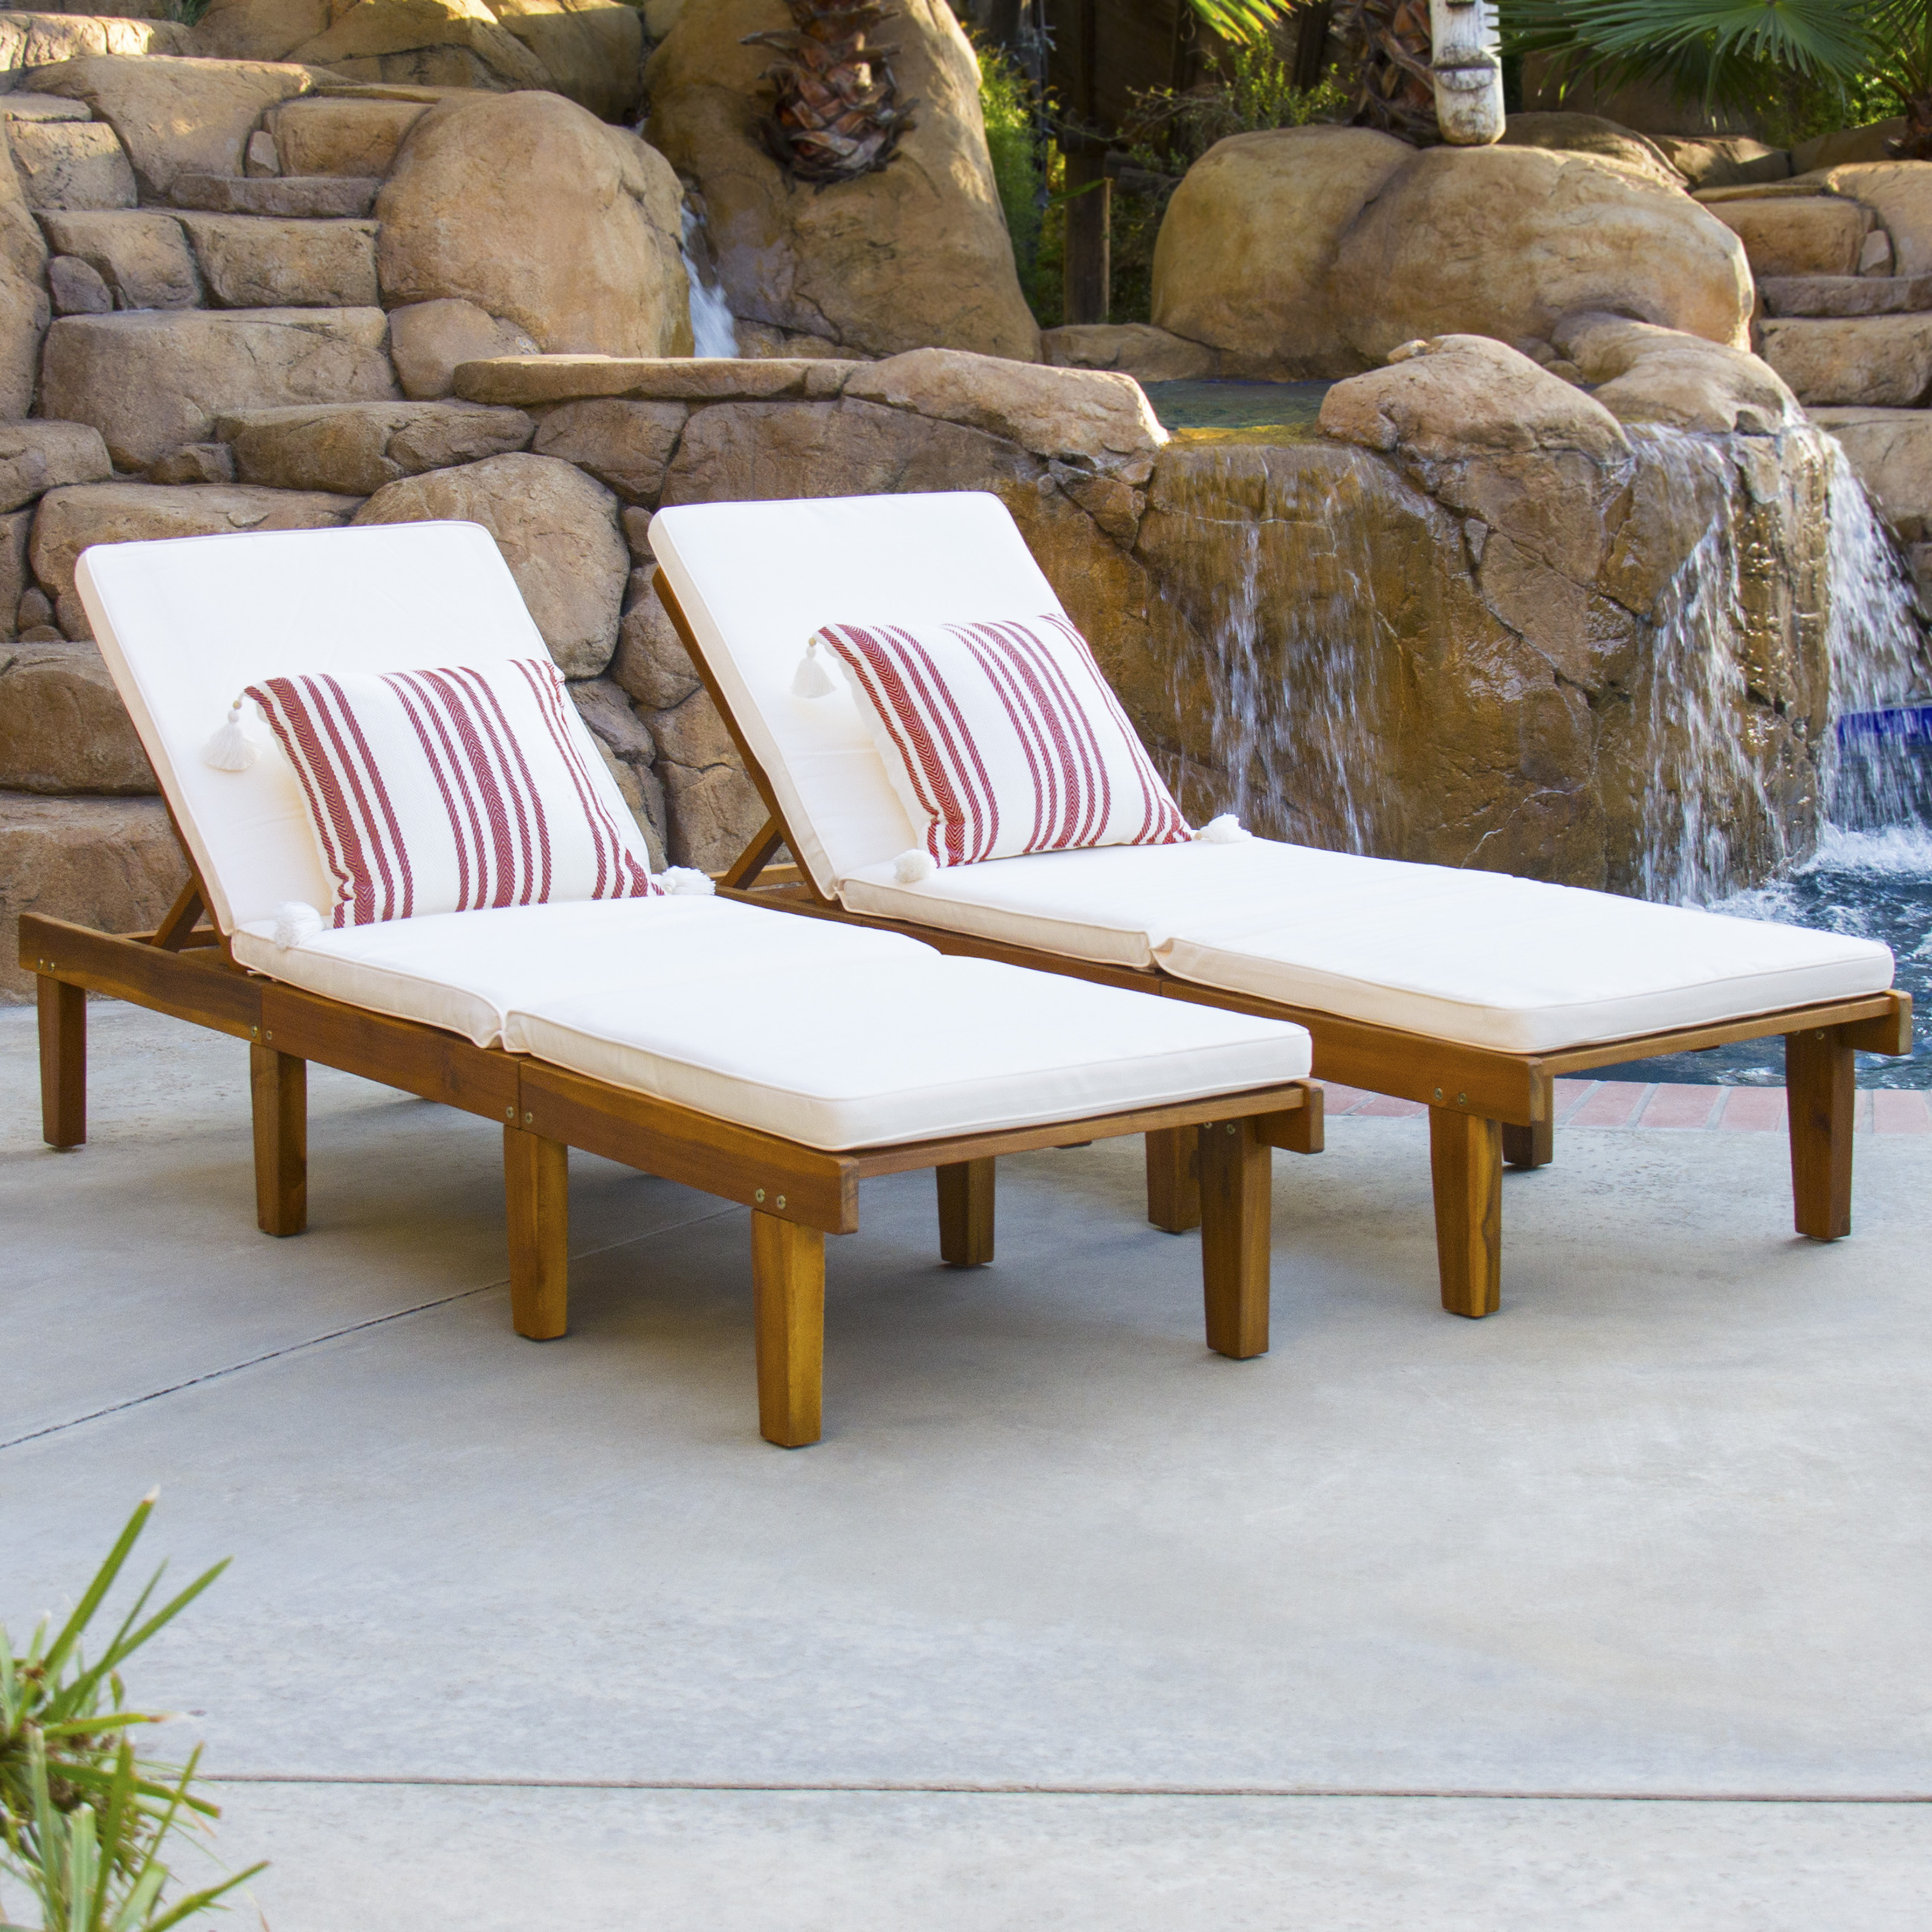 Best Choice Products Outdoor Patio Poolside Furniture Set Of 2 Acacia Wood Chaise Lounge Pertaining To Newest Outdoor 3 Piece Acacia Wood Chaise Lounge Sets (Gallery 12 of 25)